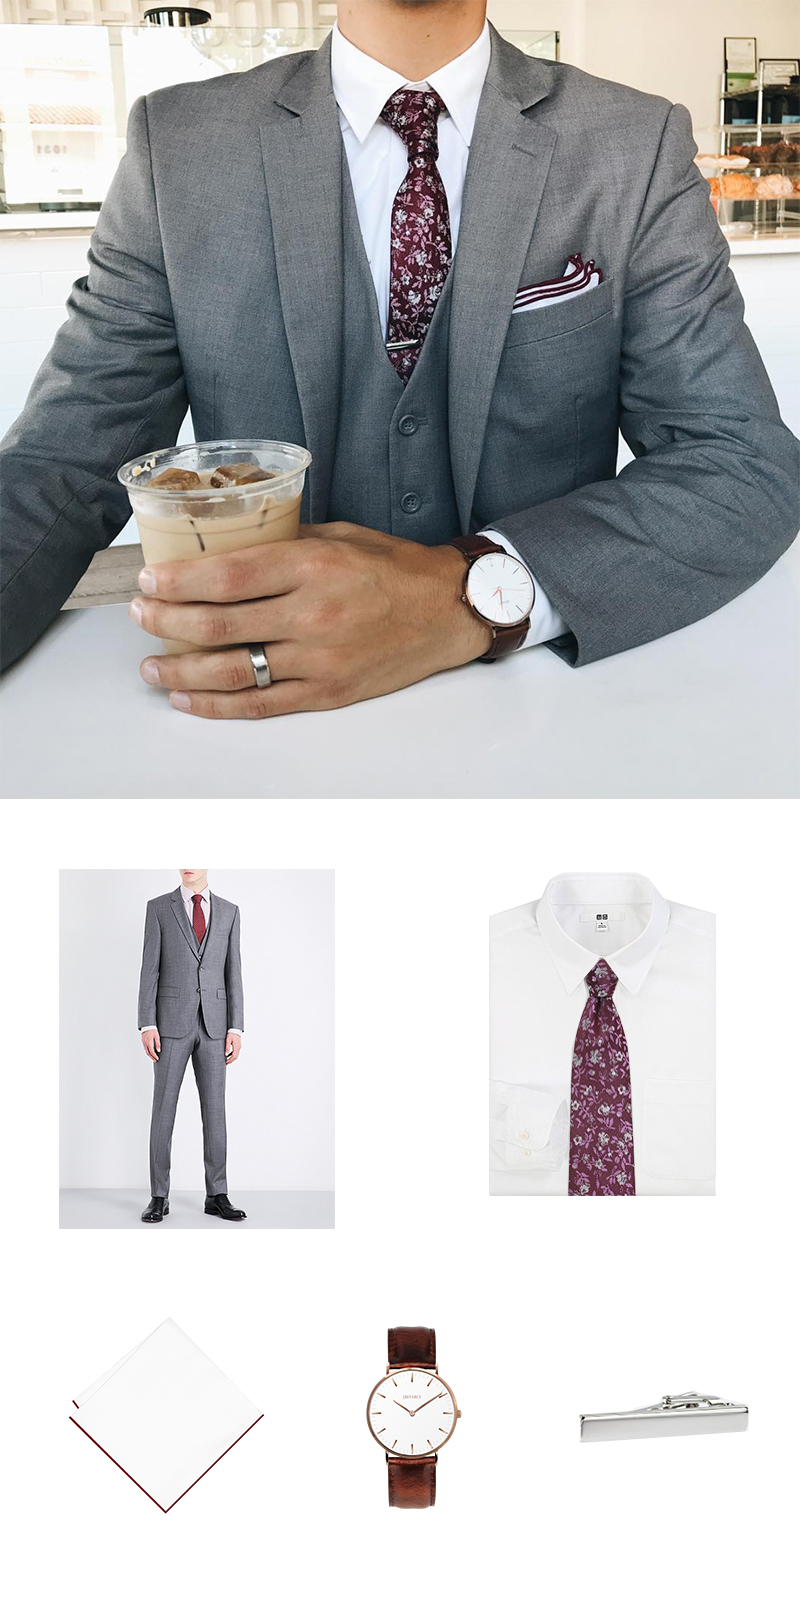 How To Wear a Floral Tie